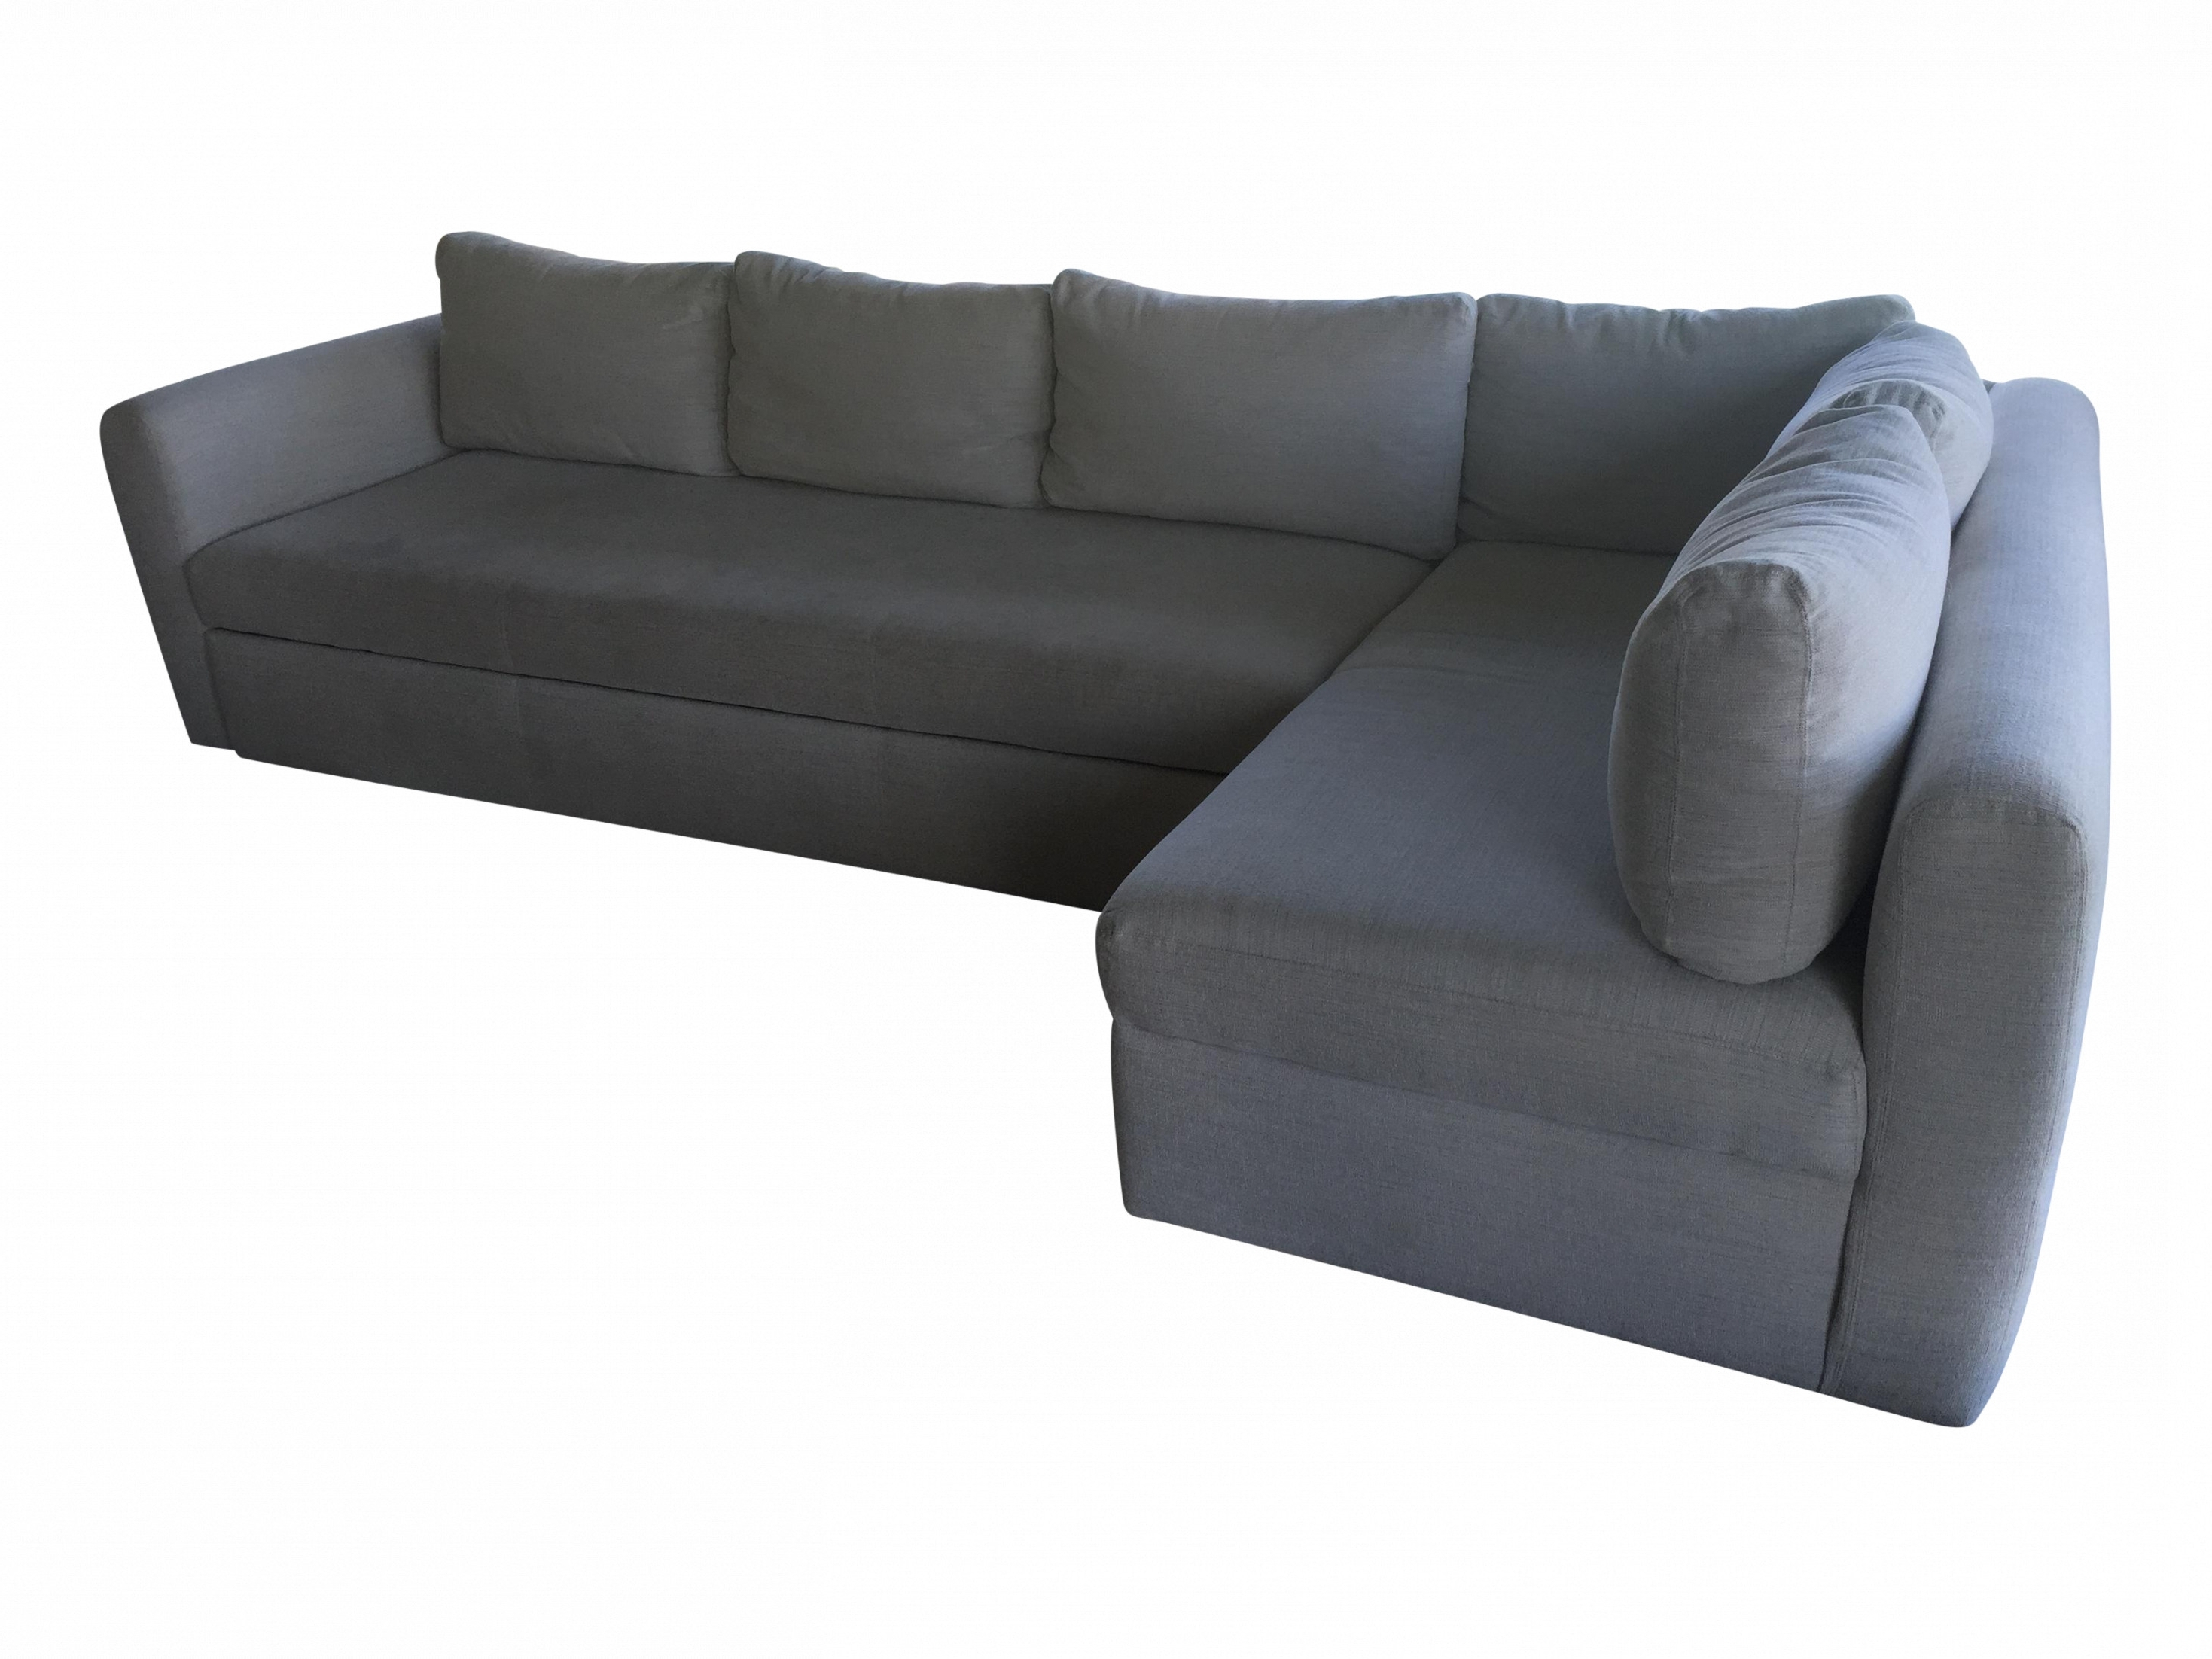 Room And Board Sectional Sofa Sleeper Sale Review Eden Stock Throughout Favorite Room And Board Sectional Sofas (View 14 of 20)